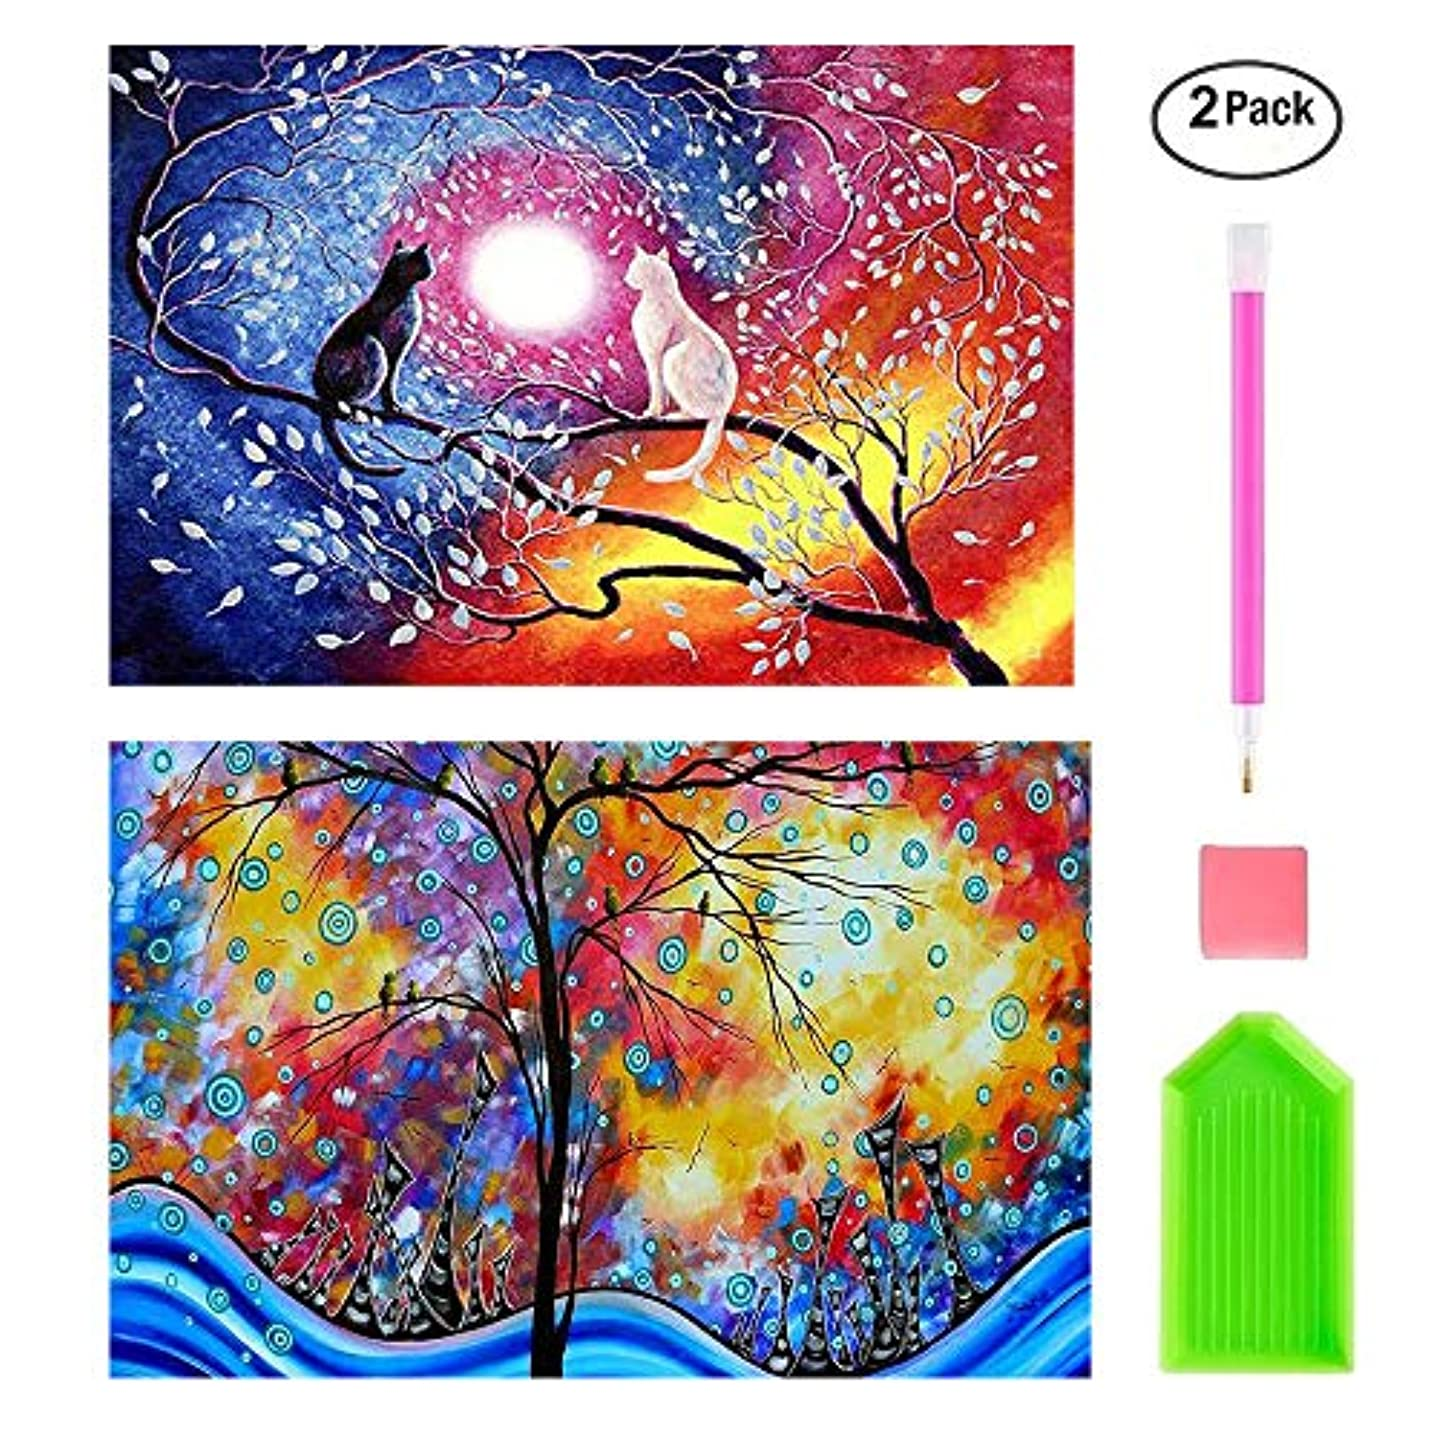 Twuky 5D DIY 2 Pack Full Drilling Diamond Painting ,by Number Kits Crafts & Sewing Cross Stitch,Wall Stickers for Living Room Decoration,Cat and Painting(14X16inch/35X40CM)